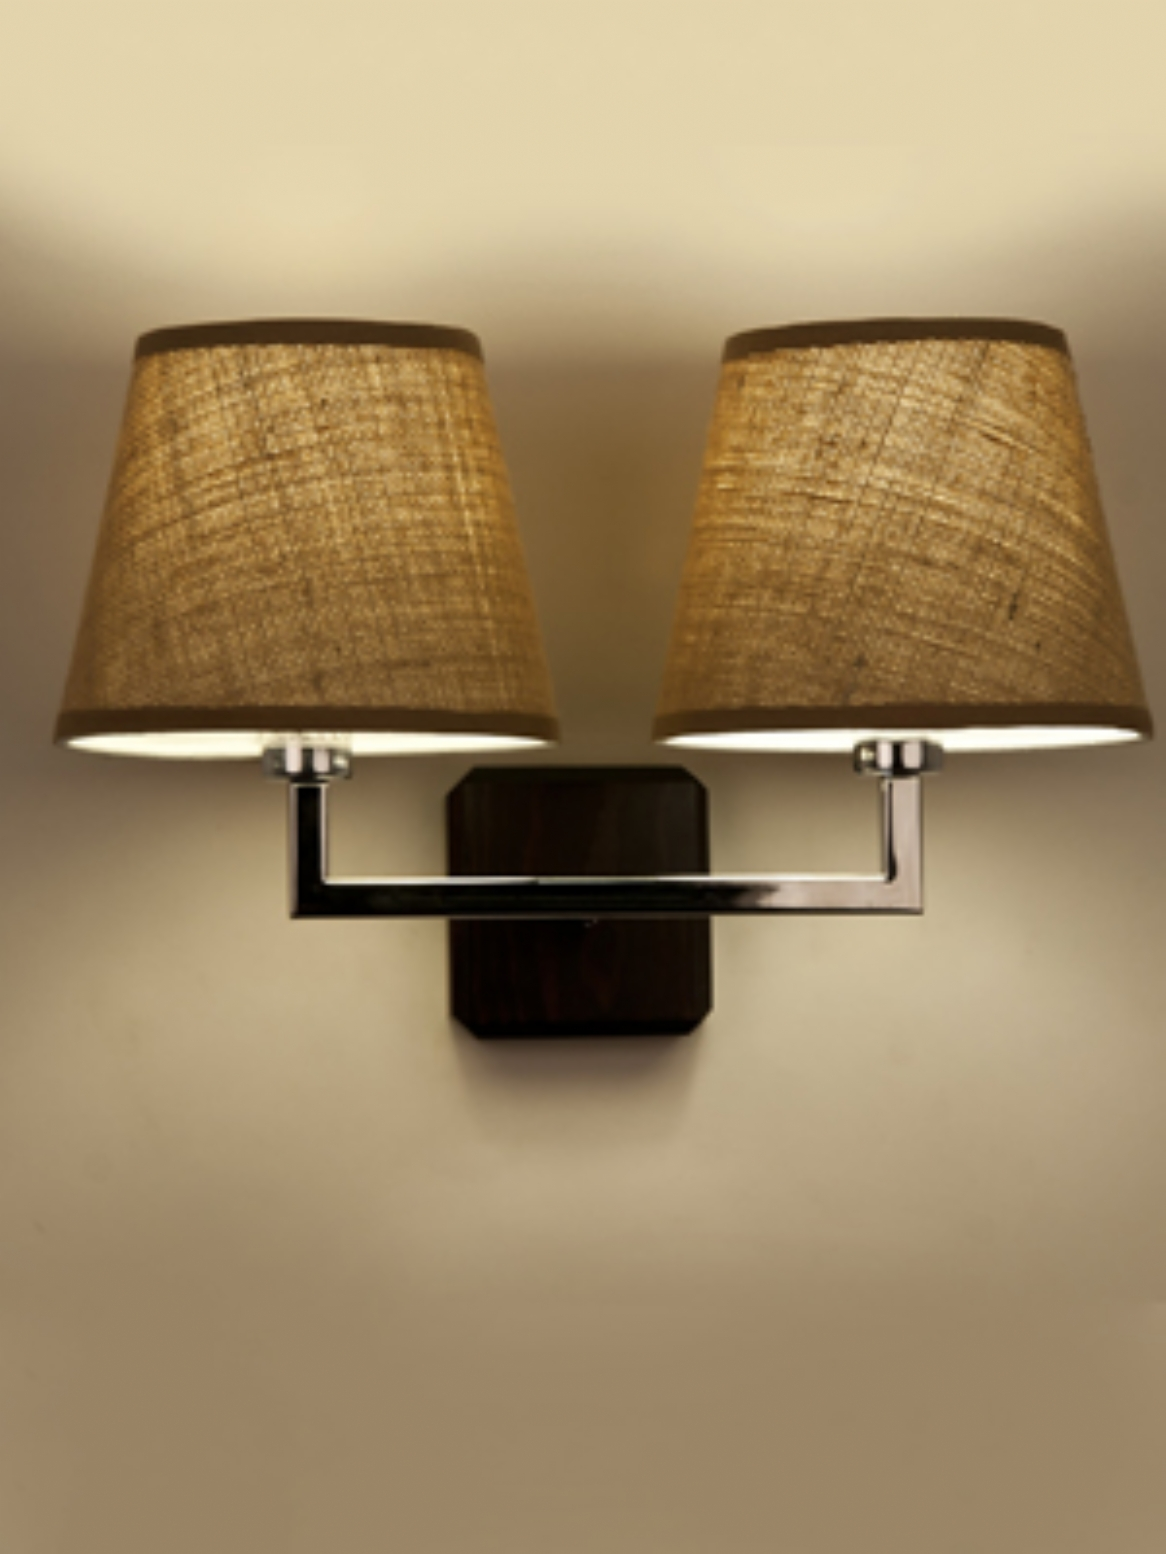 Lamp Shades For Wall Lamps : Fabric wall light shades - upgrade your interior design on a small budget Warisan Lighting